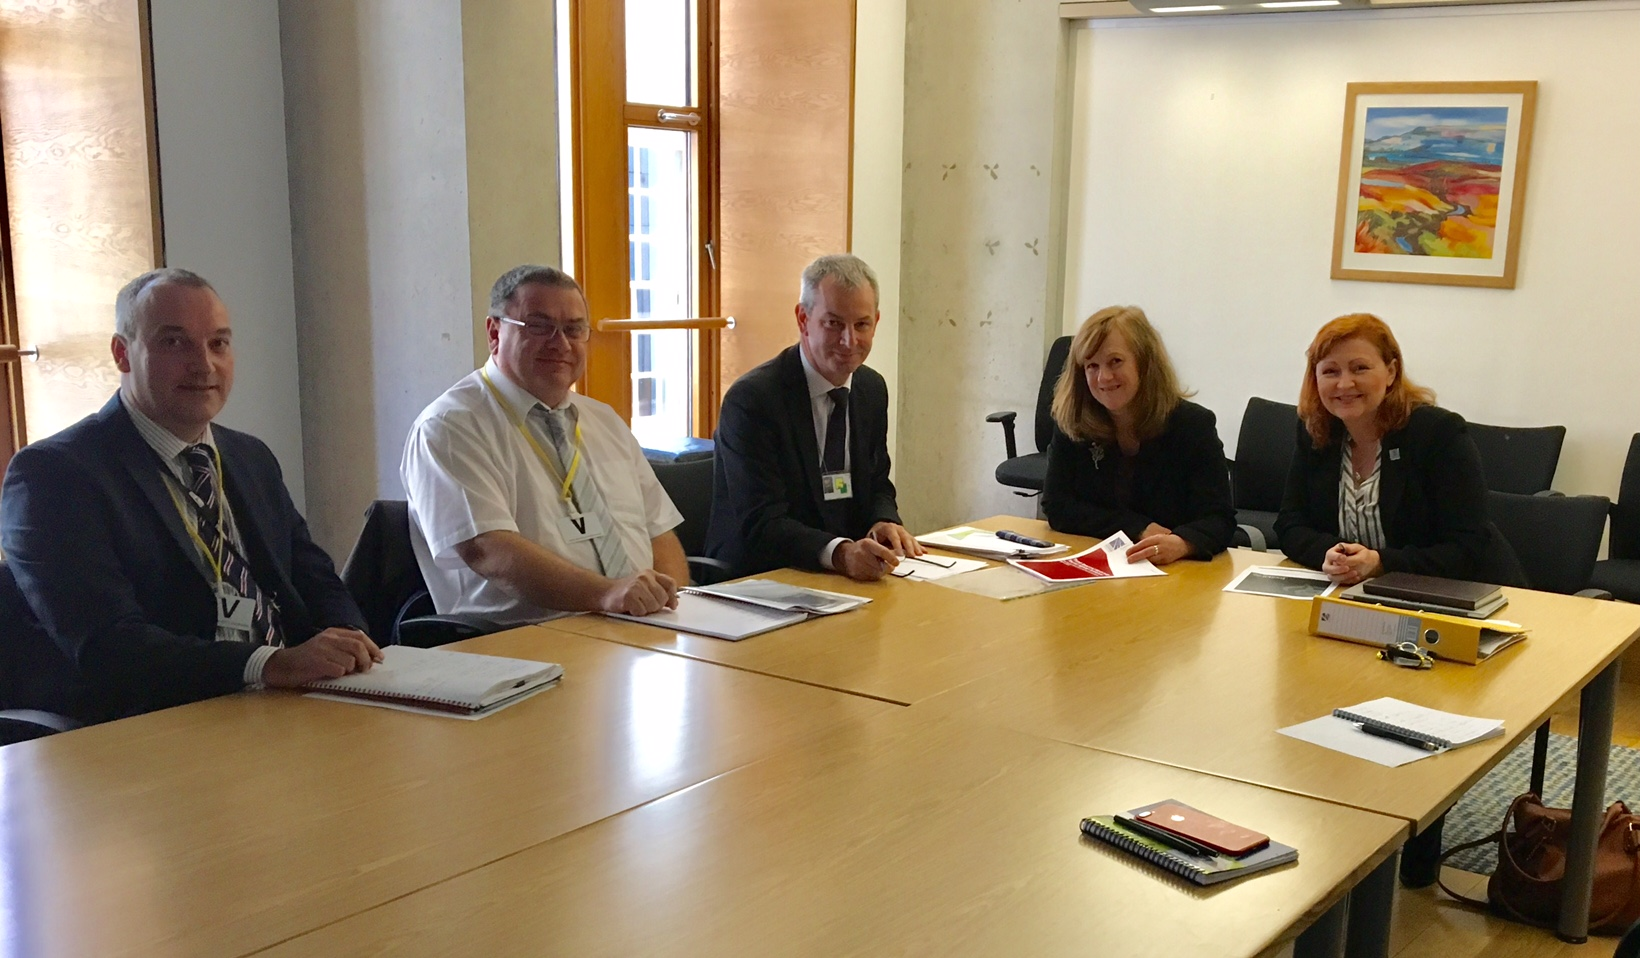 Joan_and_Emma_with_(L-R)_Graeme_McQuaker_Phil_Hichliffe_and_Hugh_Gillies_of_Transport_Scotland.jpg